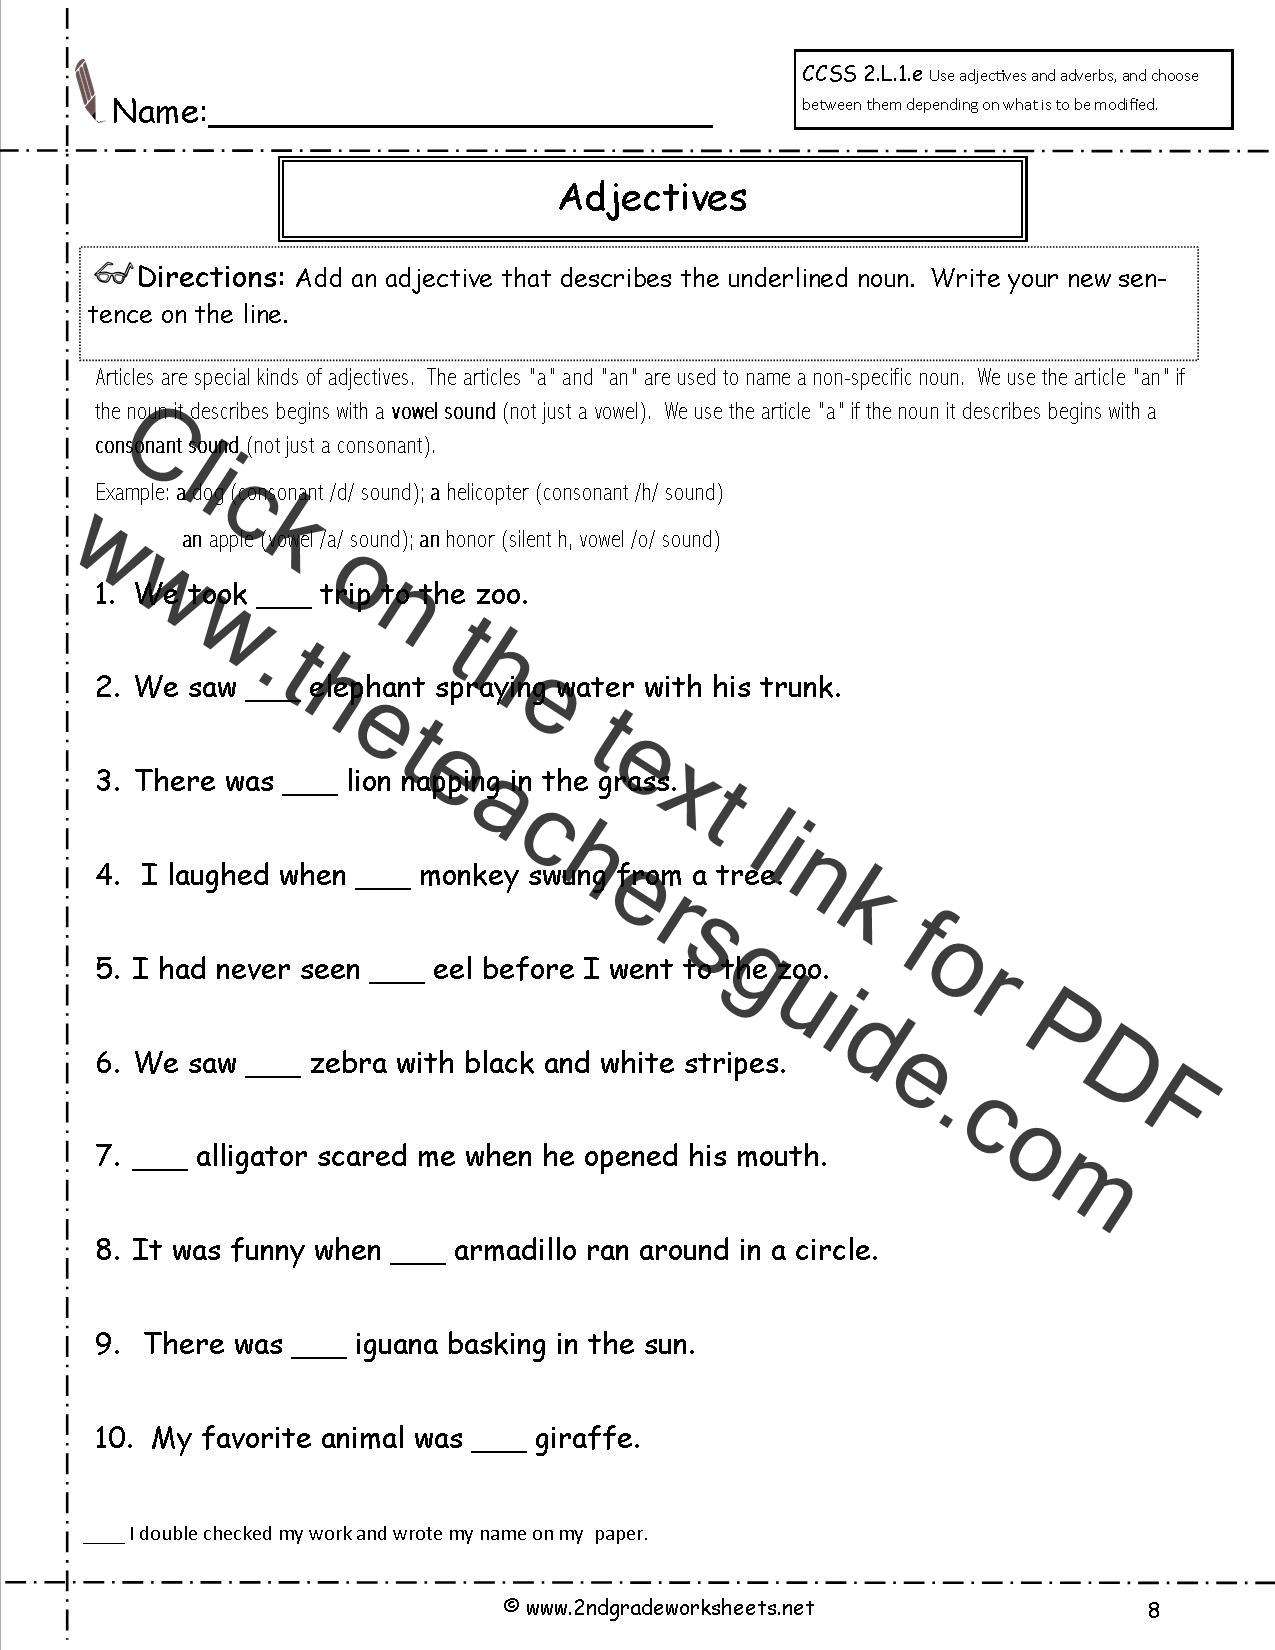 Uncategorized 3rd Grade English Worksheets free languagegrammar worksheets and printouts adjectives worksheets